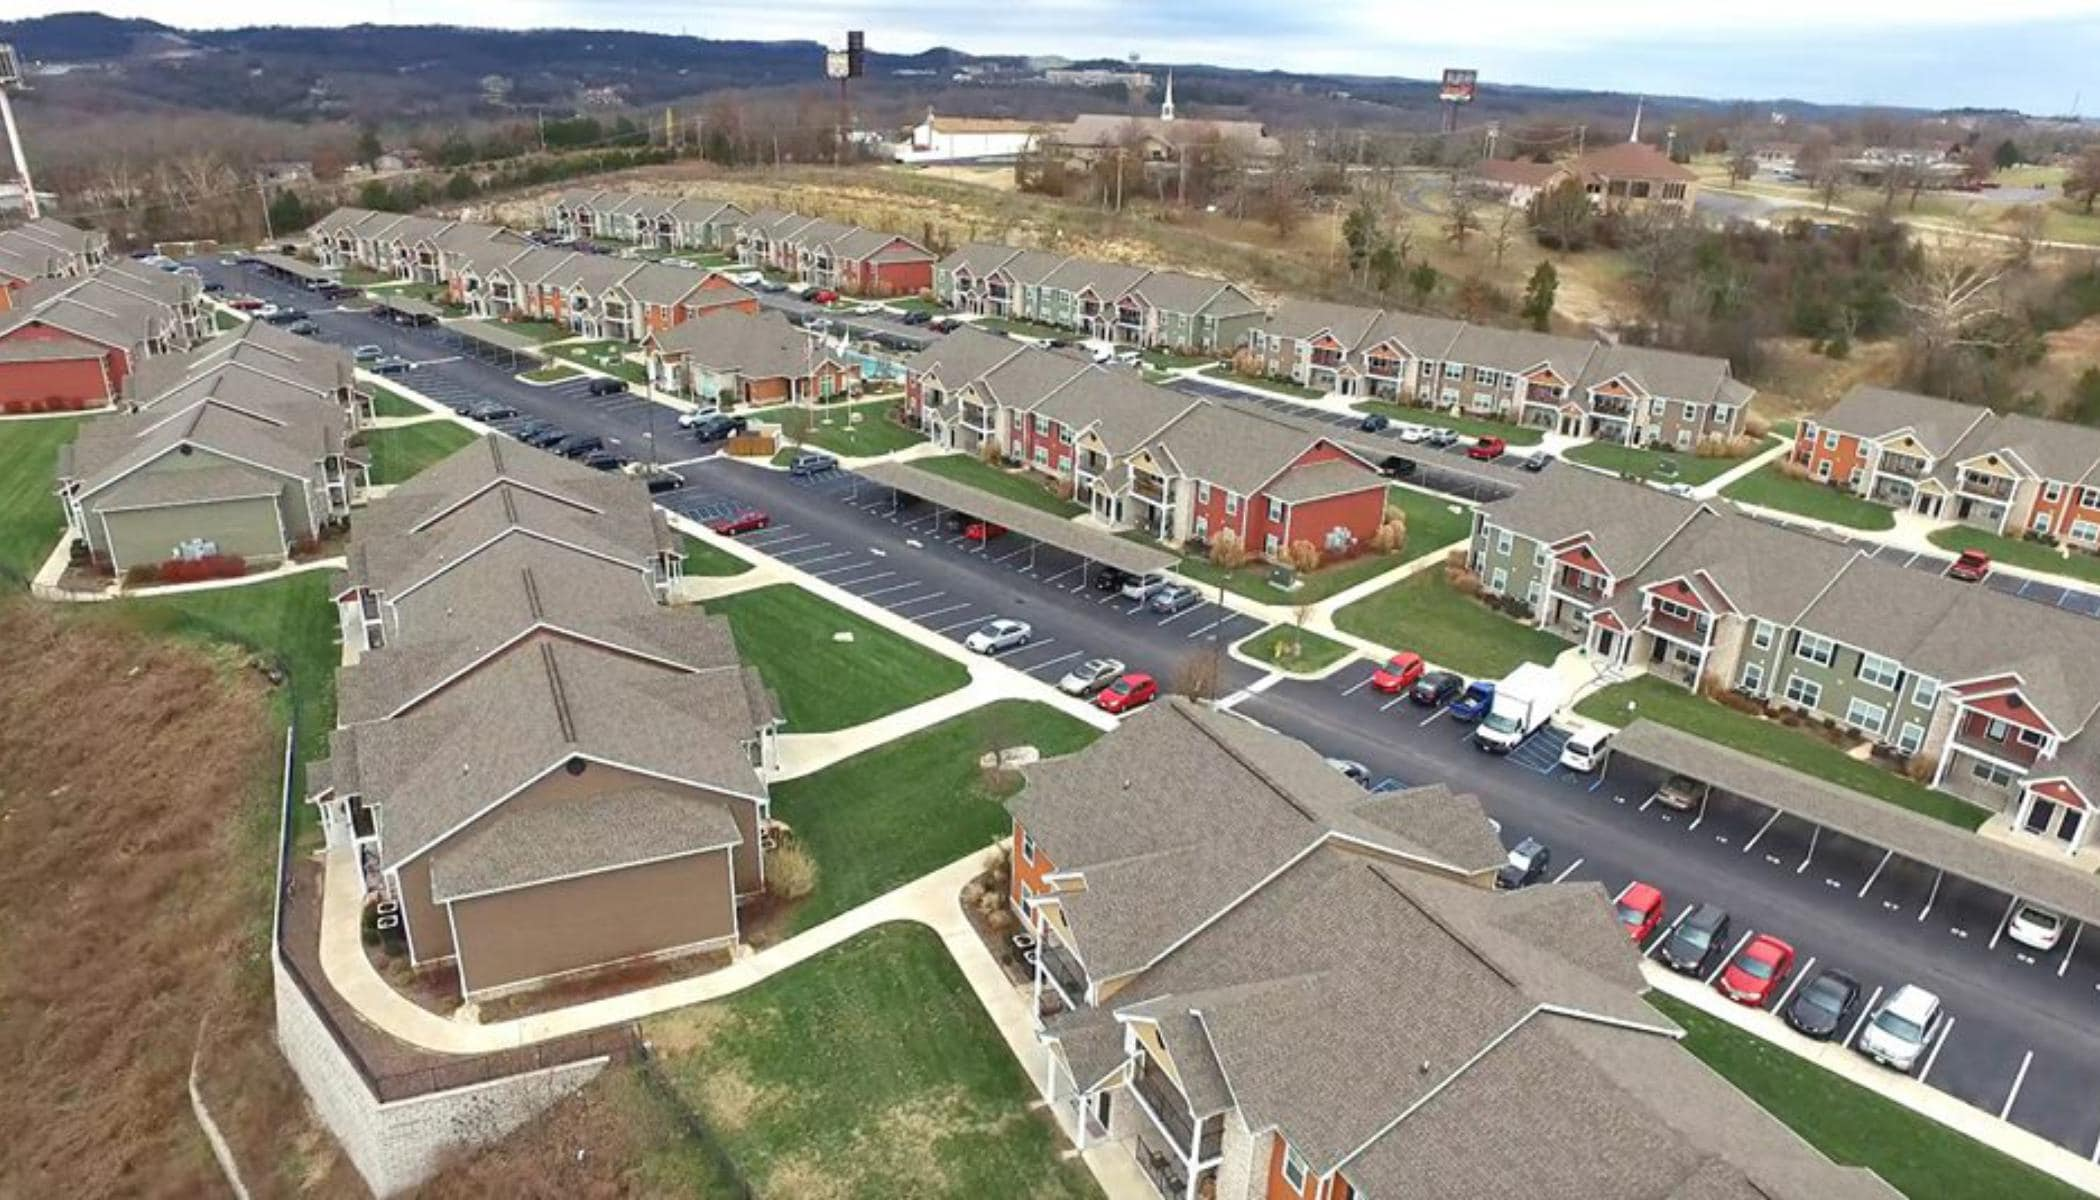 Aerial view of our apartments at Bee Creek Apartments in Branson, MO